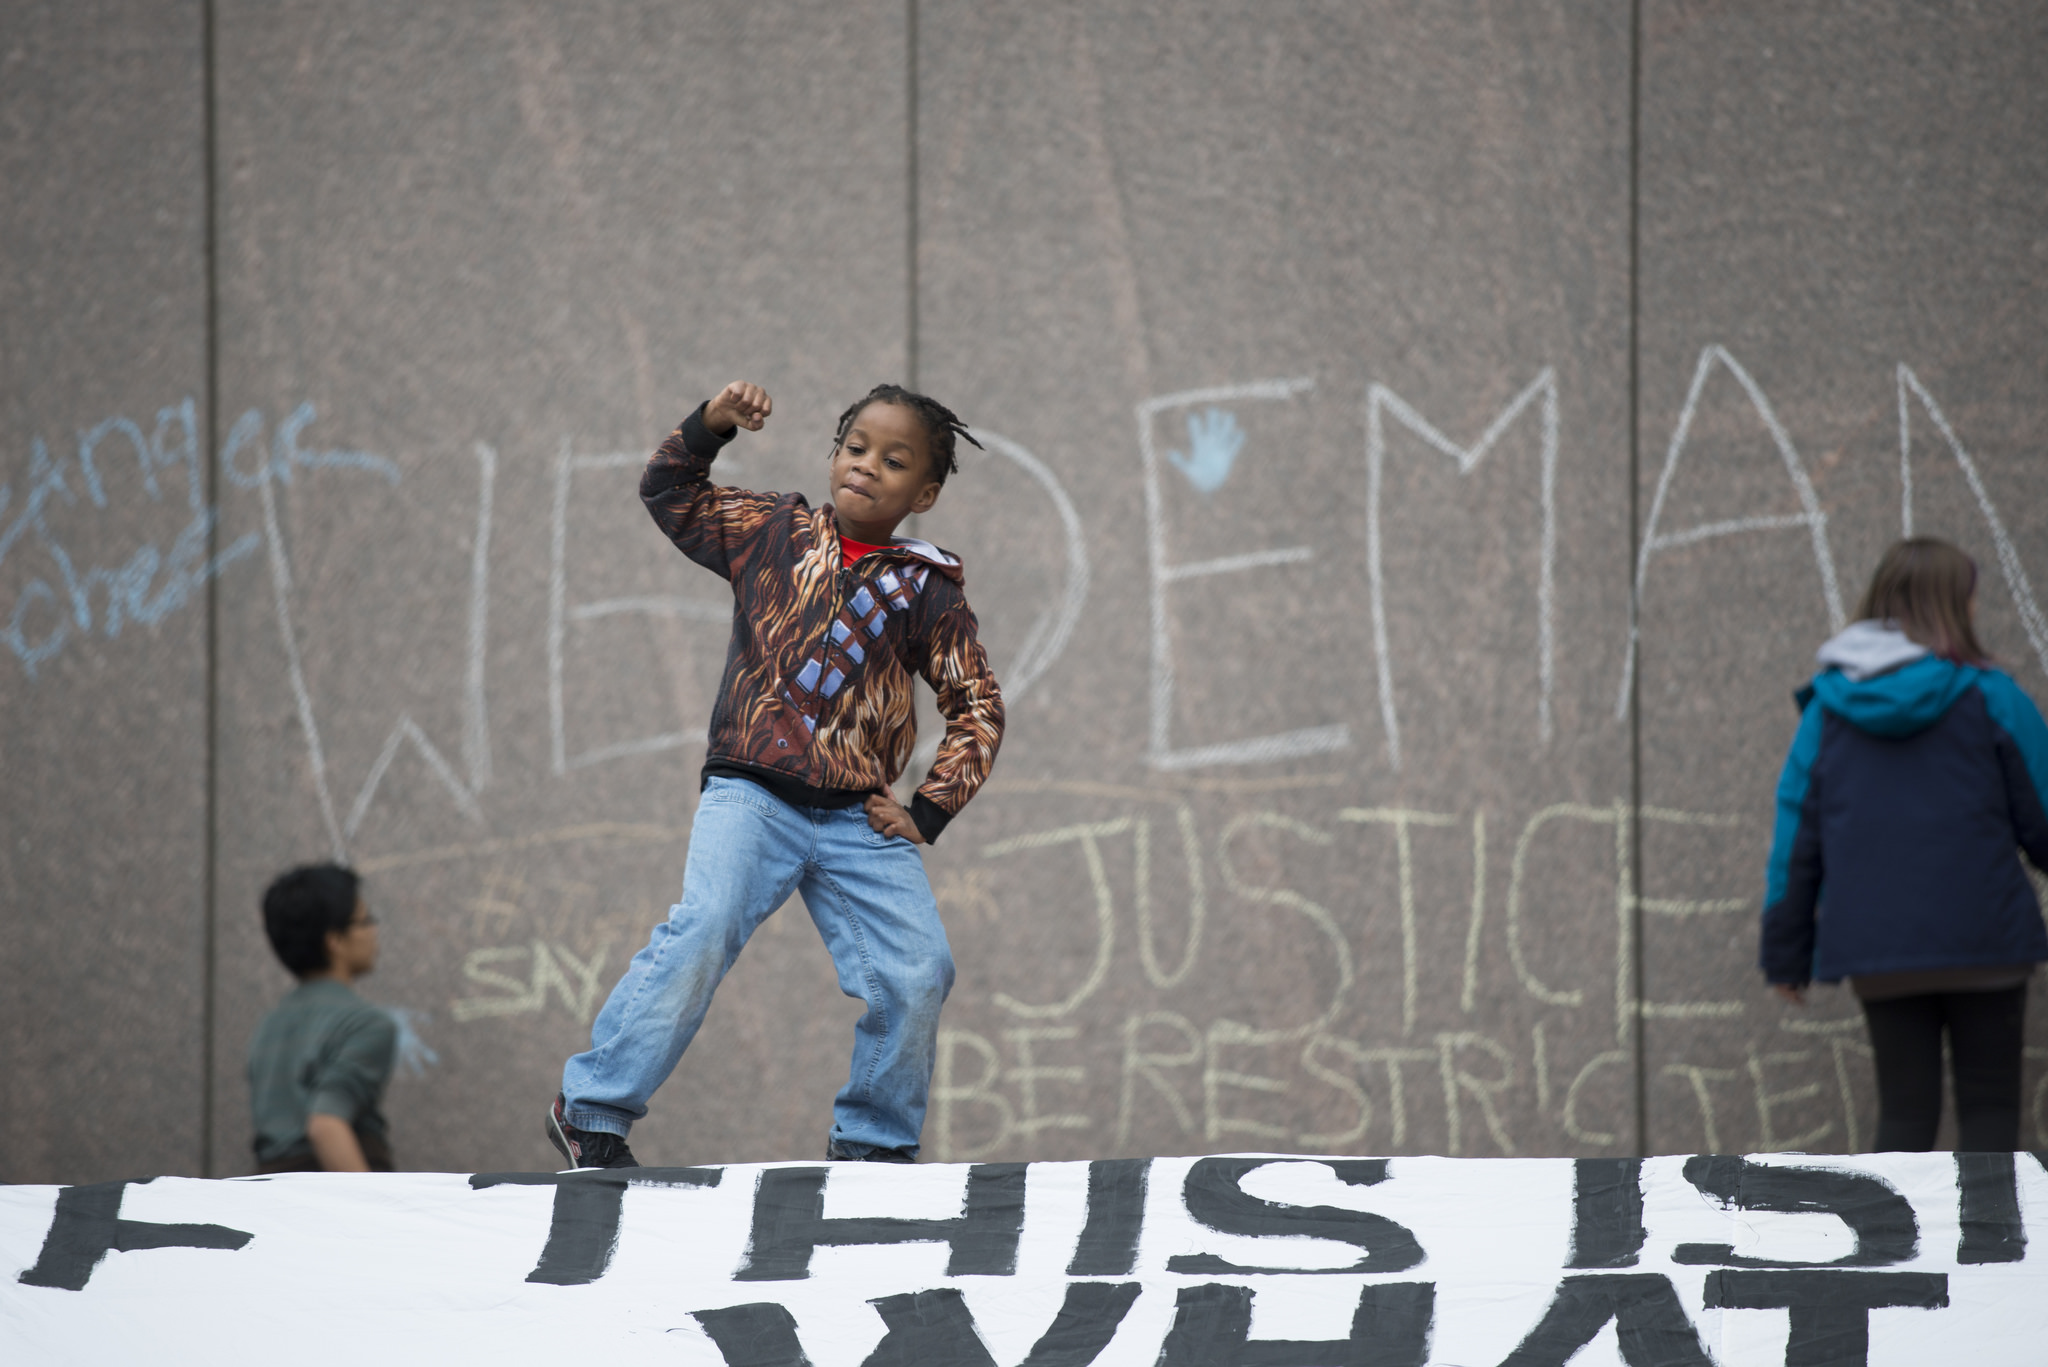 A young boy raises his fist at a protest against the police killing of Jamar Clark in Minneapolis. Shortly after 24-year-old Clark's death, the hashtag #Justice4Jamar started trending on Twitter. (Photo by Fibonacci Blue/Flickr User)